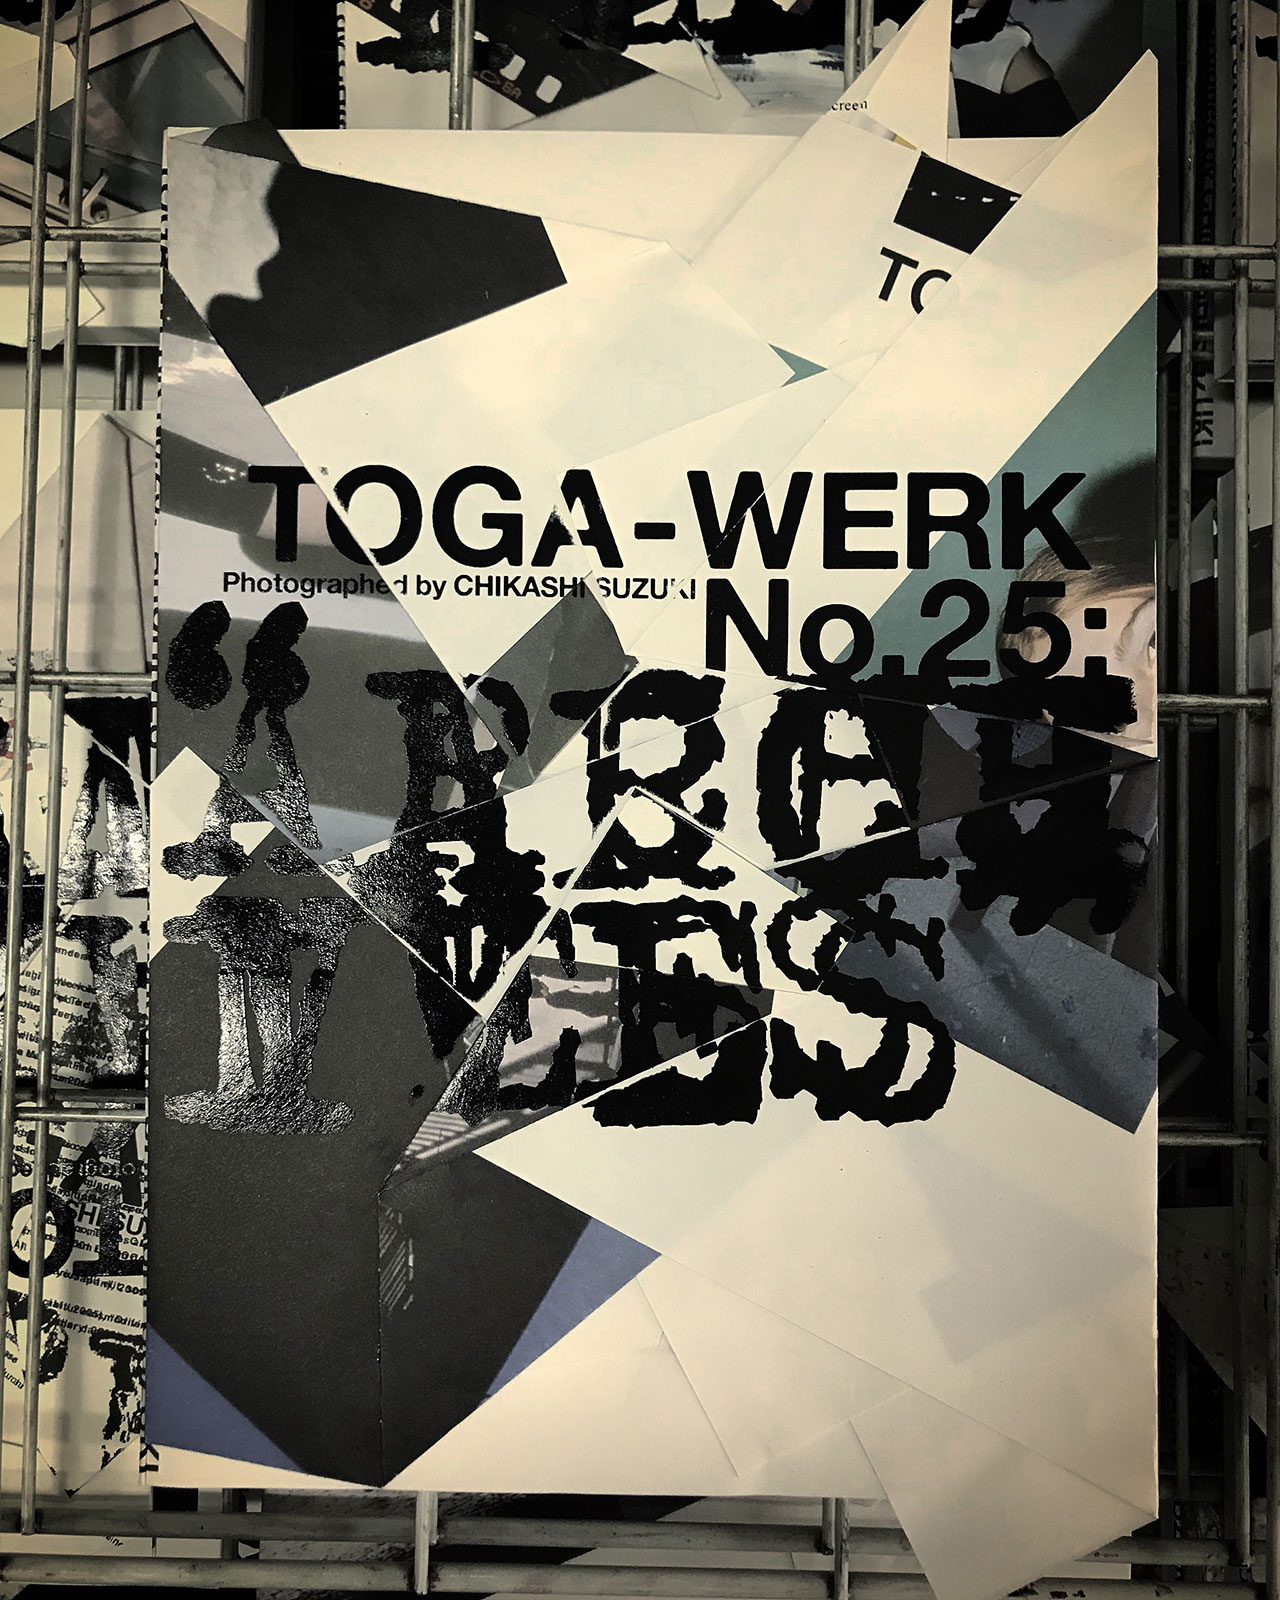 『TOGA-WERK No.25: ARCHIVES』 ¥11,000